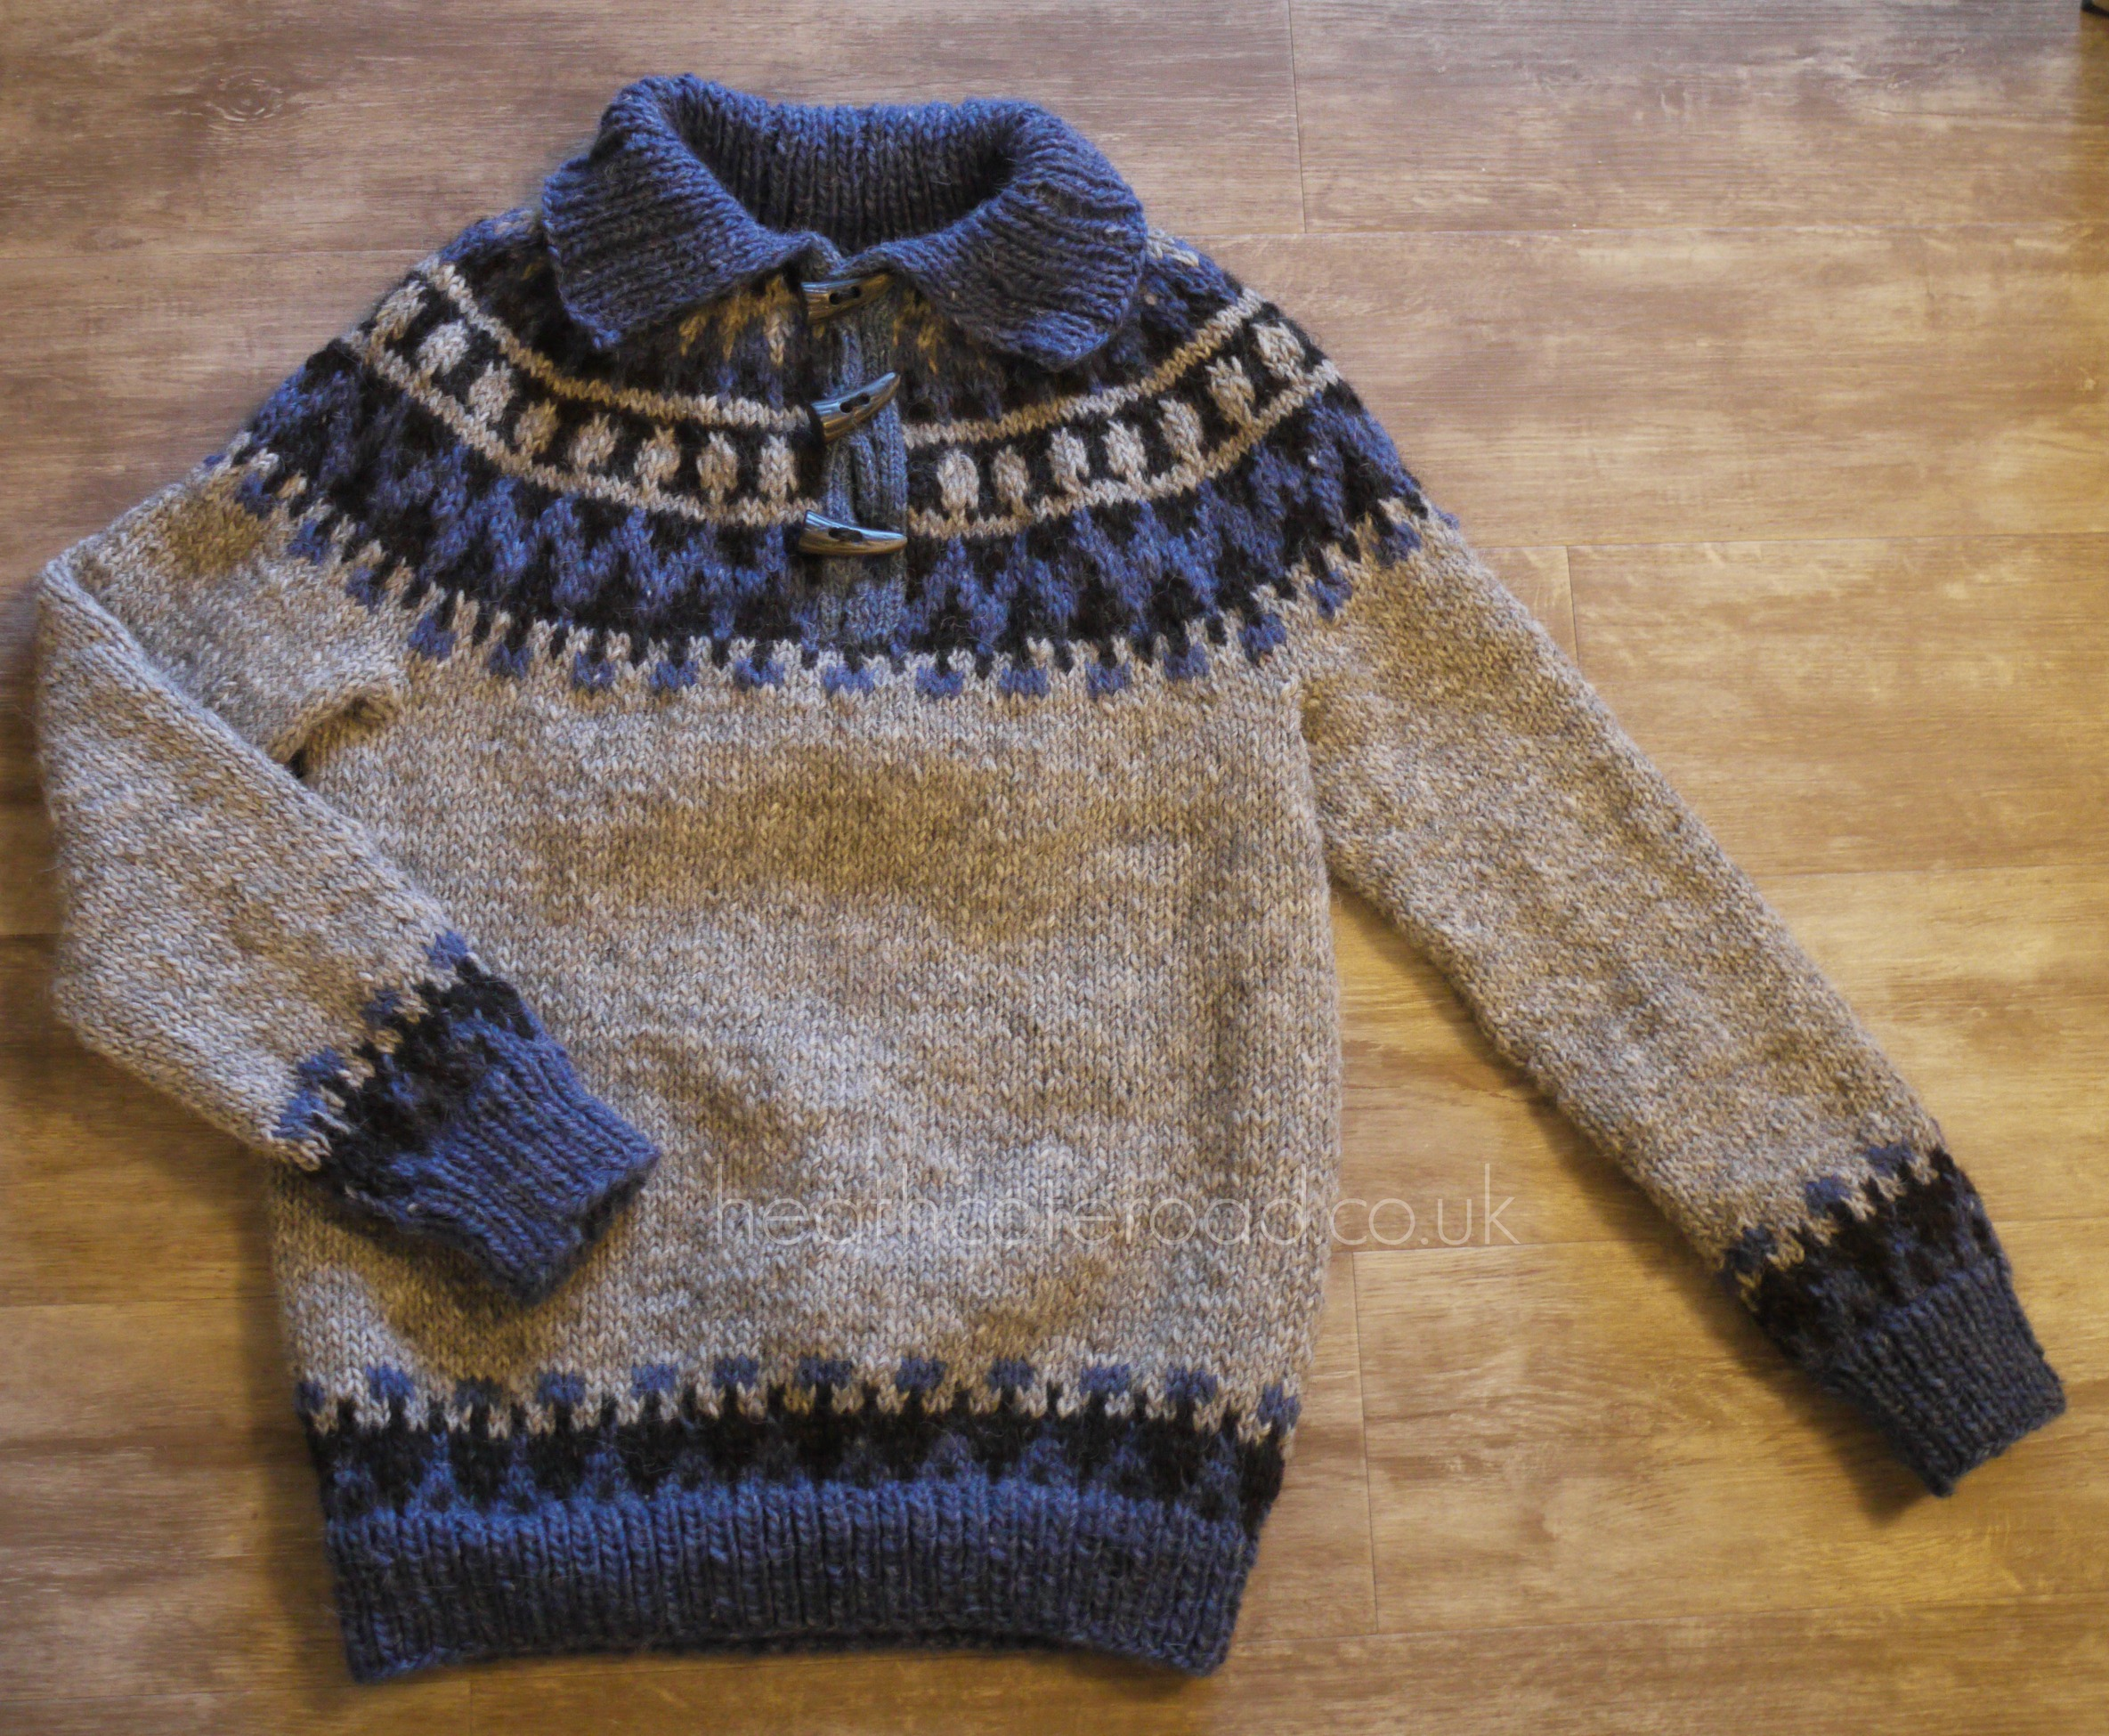 Garri jumper finished, but unblocked.